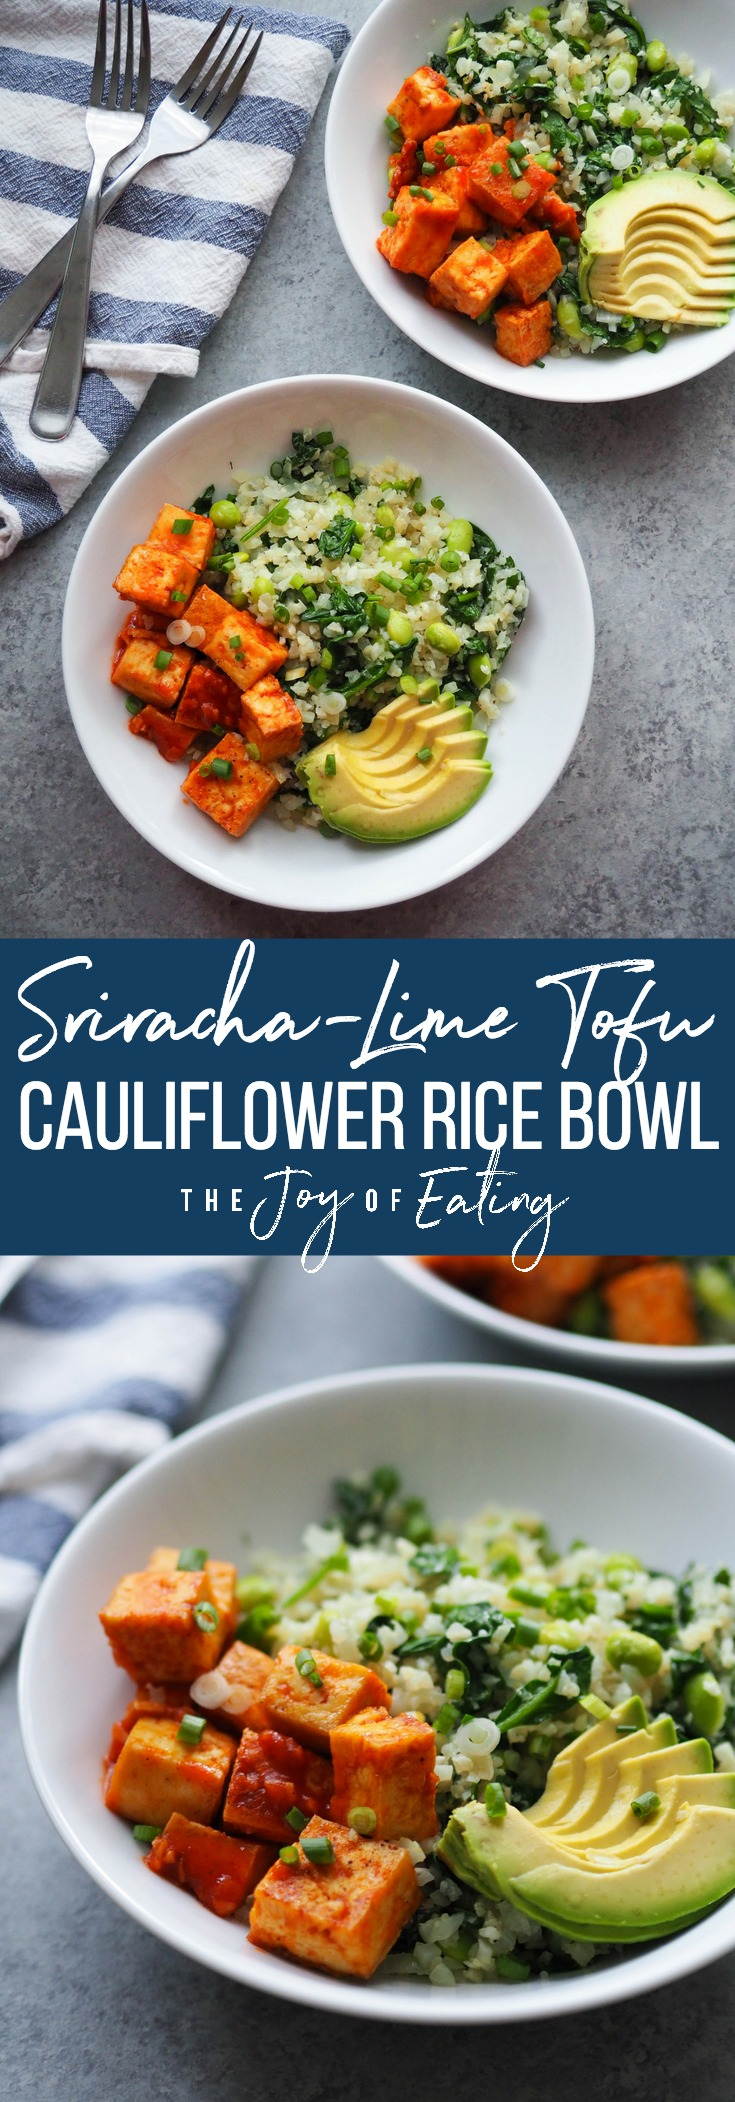 Sriracha-Lime Tofu Cauliflower Rice Bowl! Top garlicky sauteed cauliflower rice with crispy baked tofu in a spicy sriracha-lime sauce! Packed with protein and veggies! #vegan #vegetarian #healthyrecipe #cauliflower #tofu #glutenfree